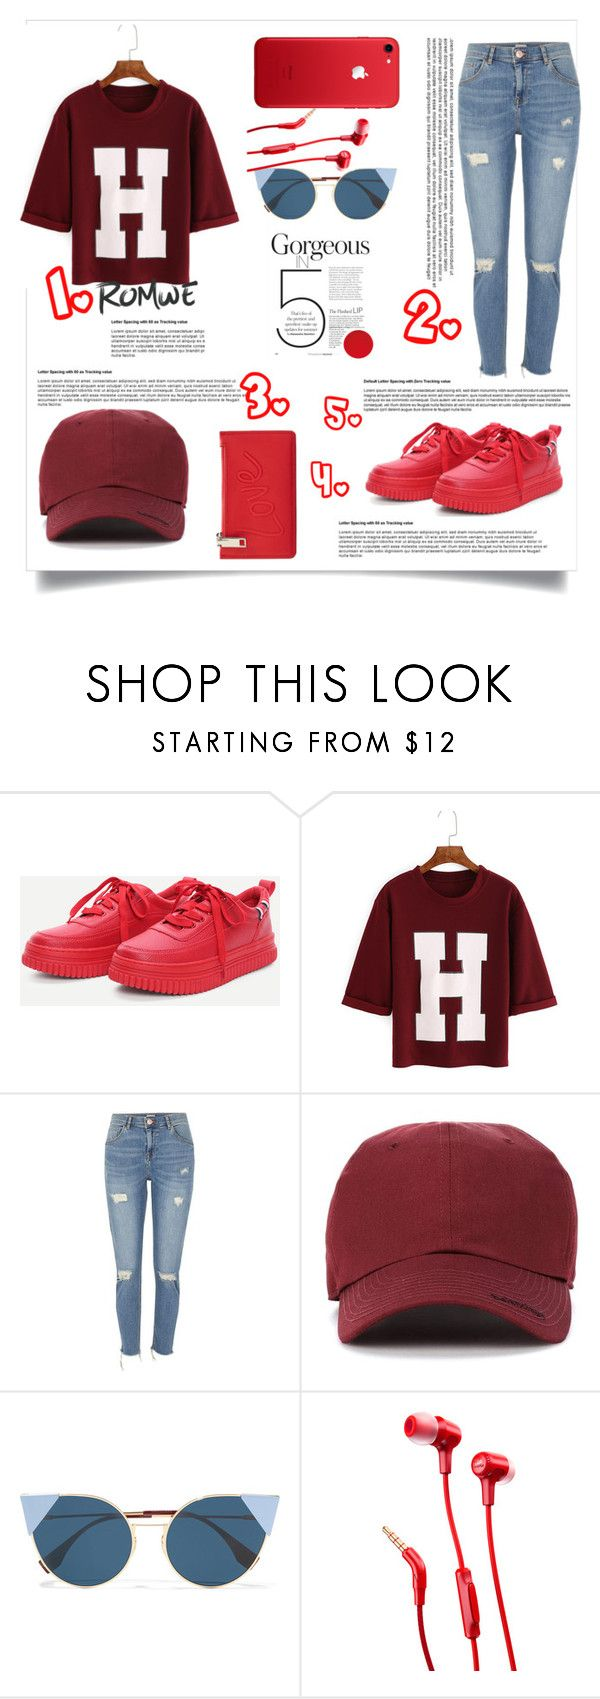 """""""5 Red elements!  Outfit goals"""" by aura-helena ❤ liked on Polyvore featuring River Island, Balenciaga, Fendi, JBL, MANGO, outfit, red, romwe, inspiration and womenfashion"""